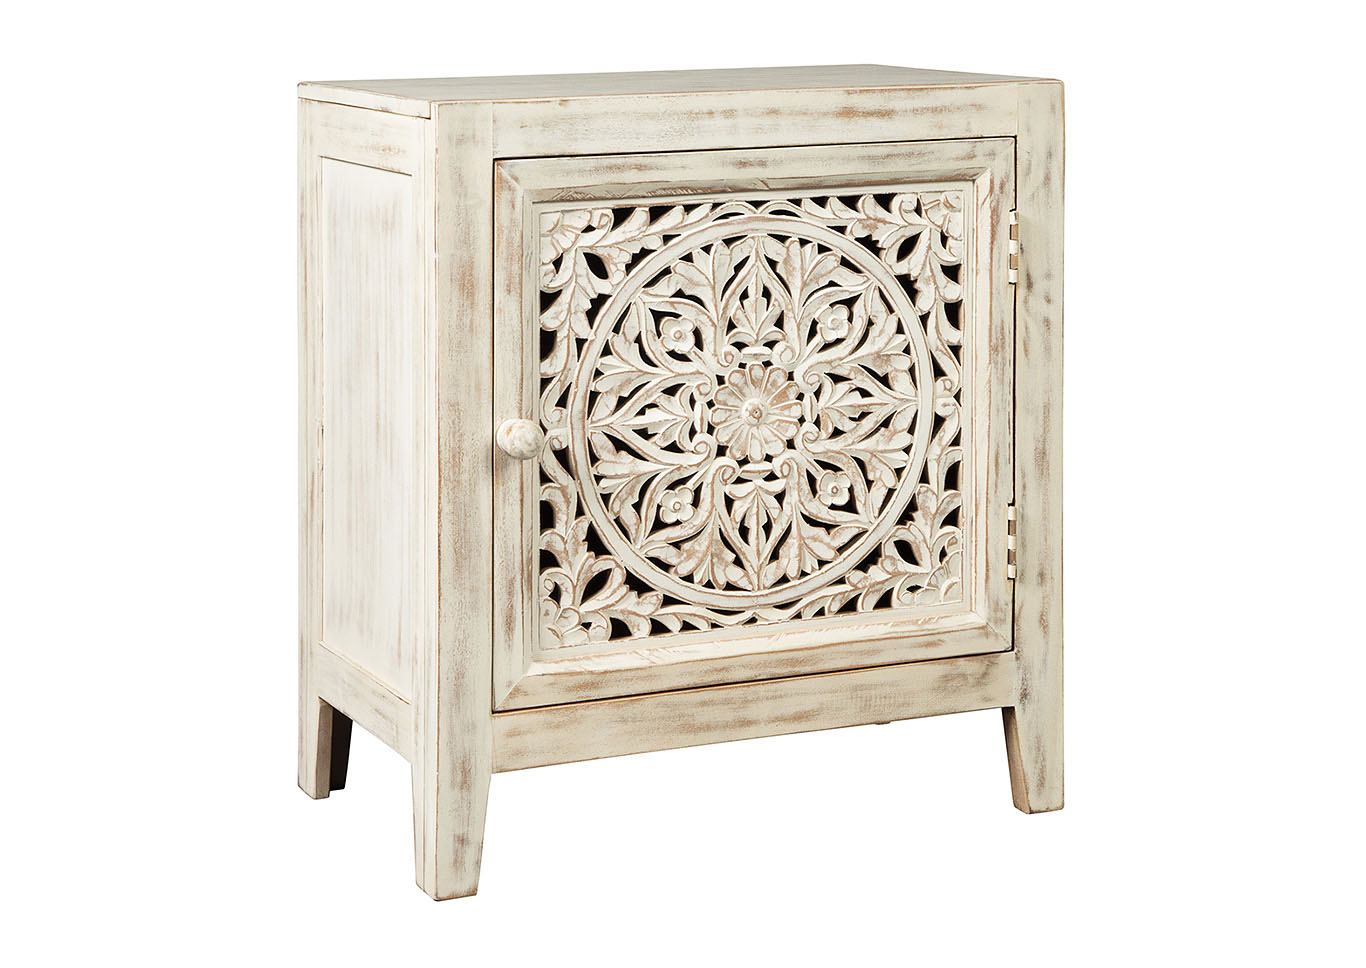 Fossil Ridge White Accent Cabinet,Direct To Consumer Express